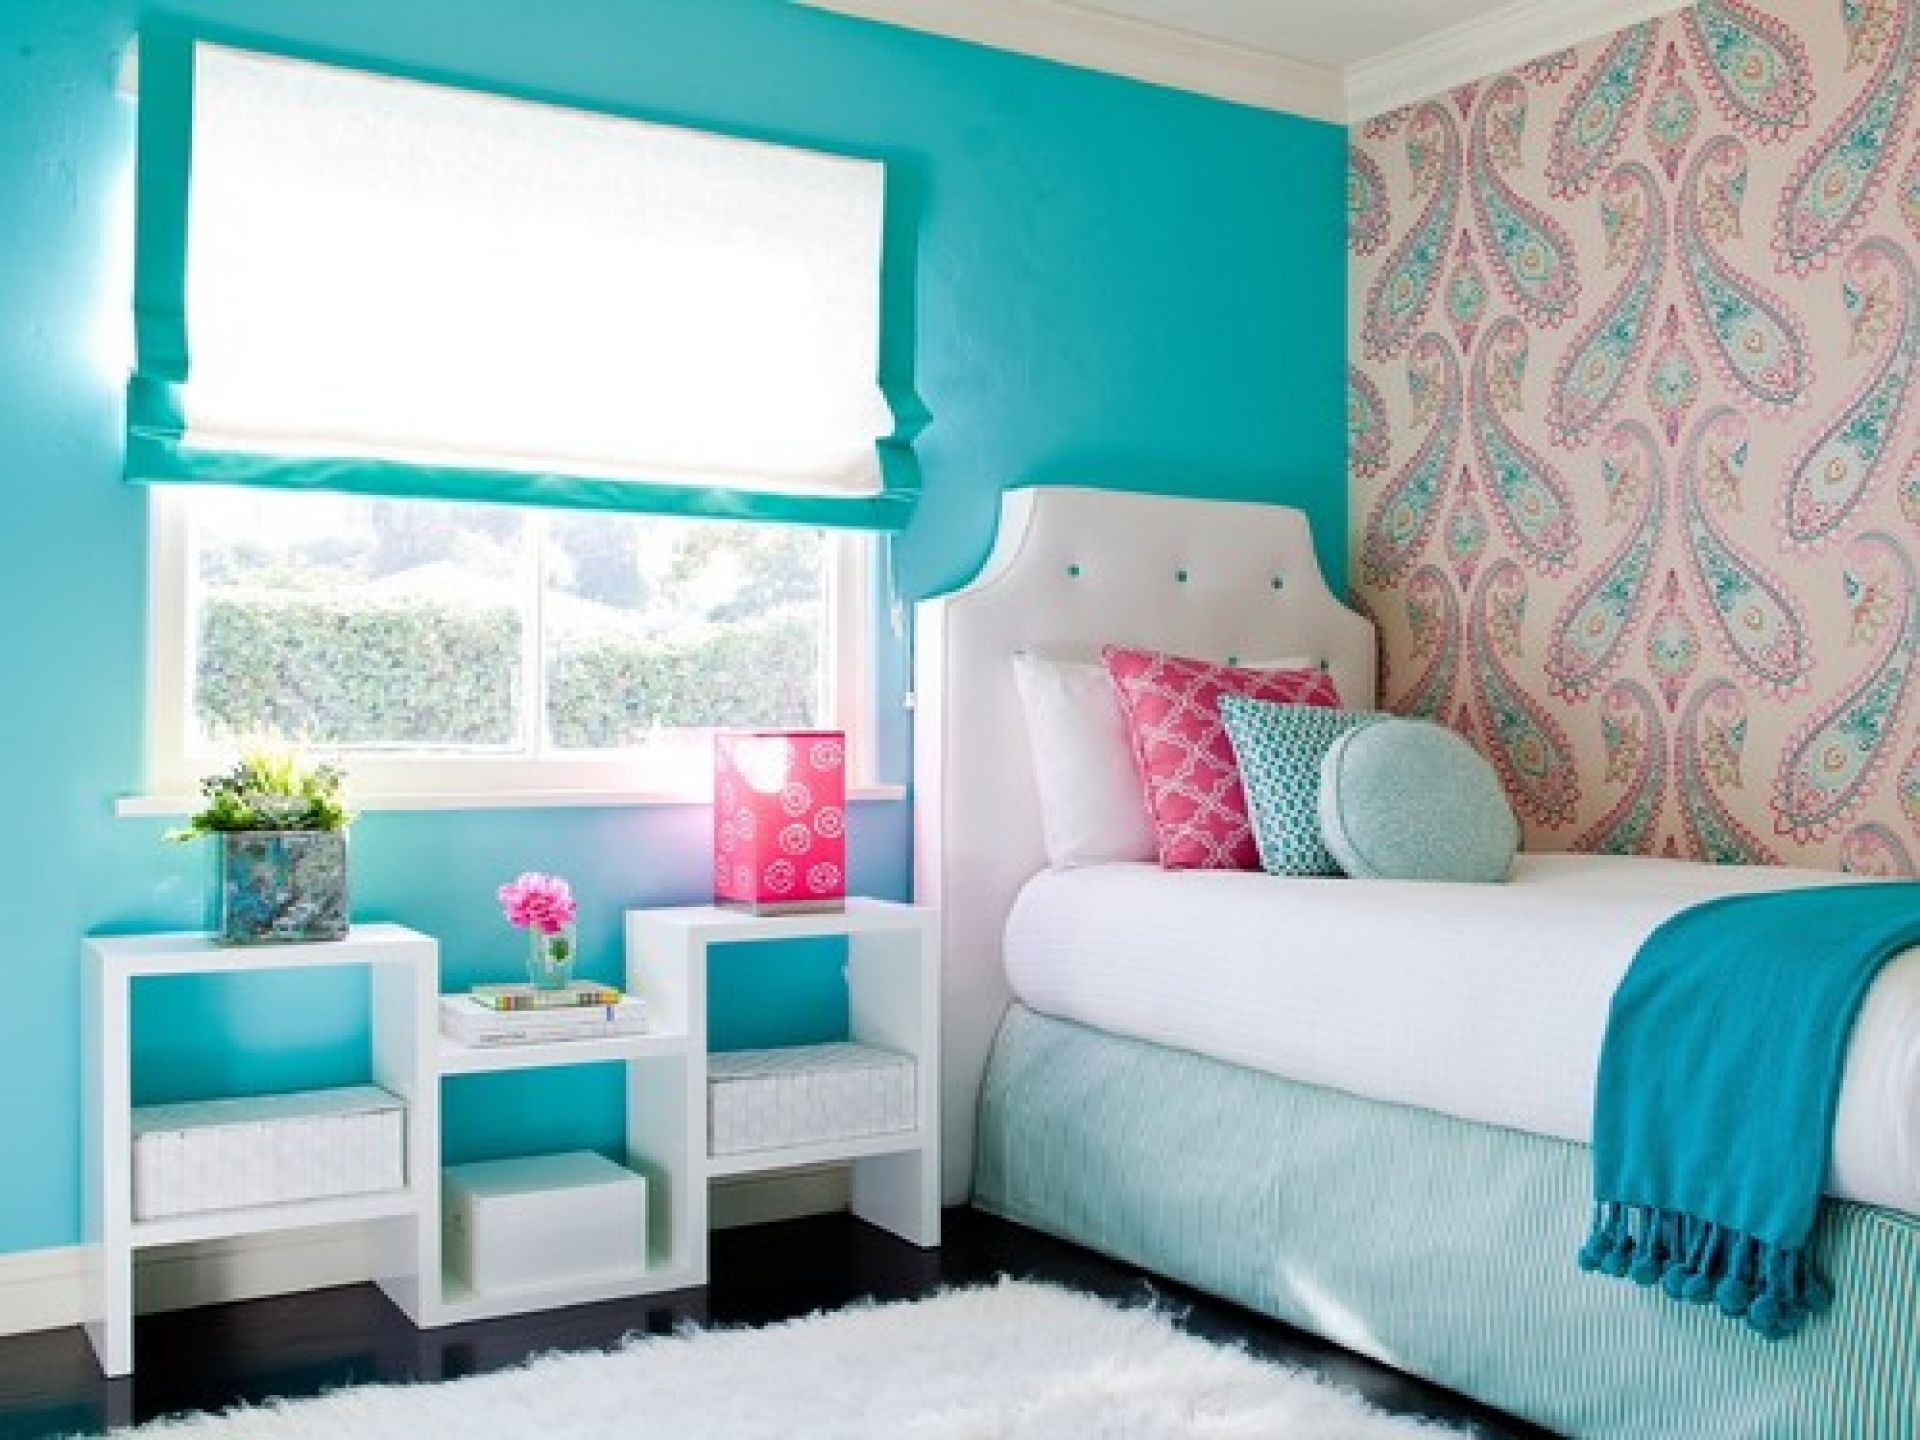 Simple design comfy room colors teenage girl bedroom wall Girls bedroom paint ideas